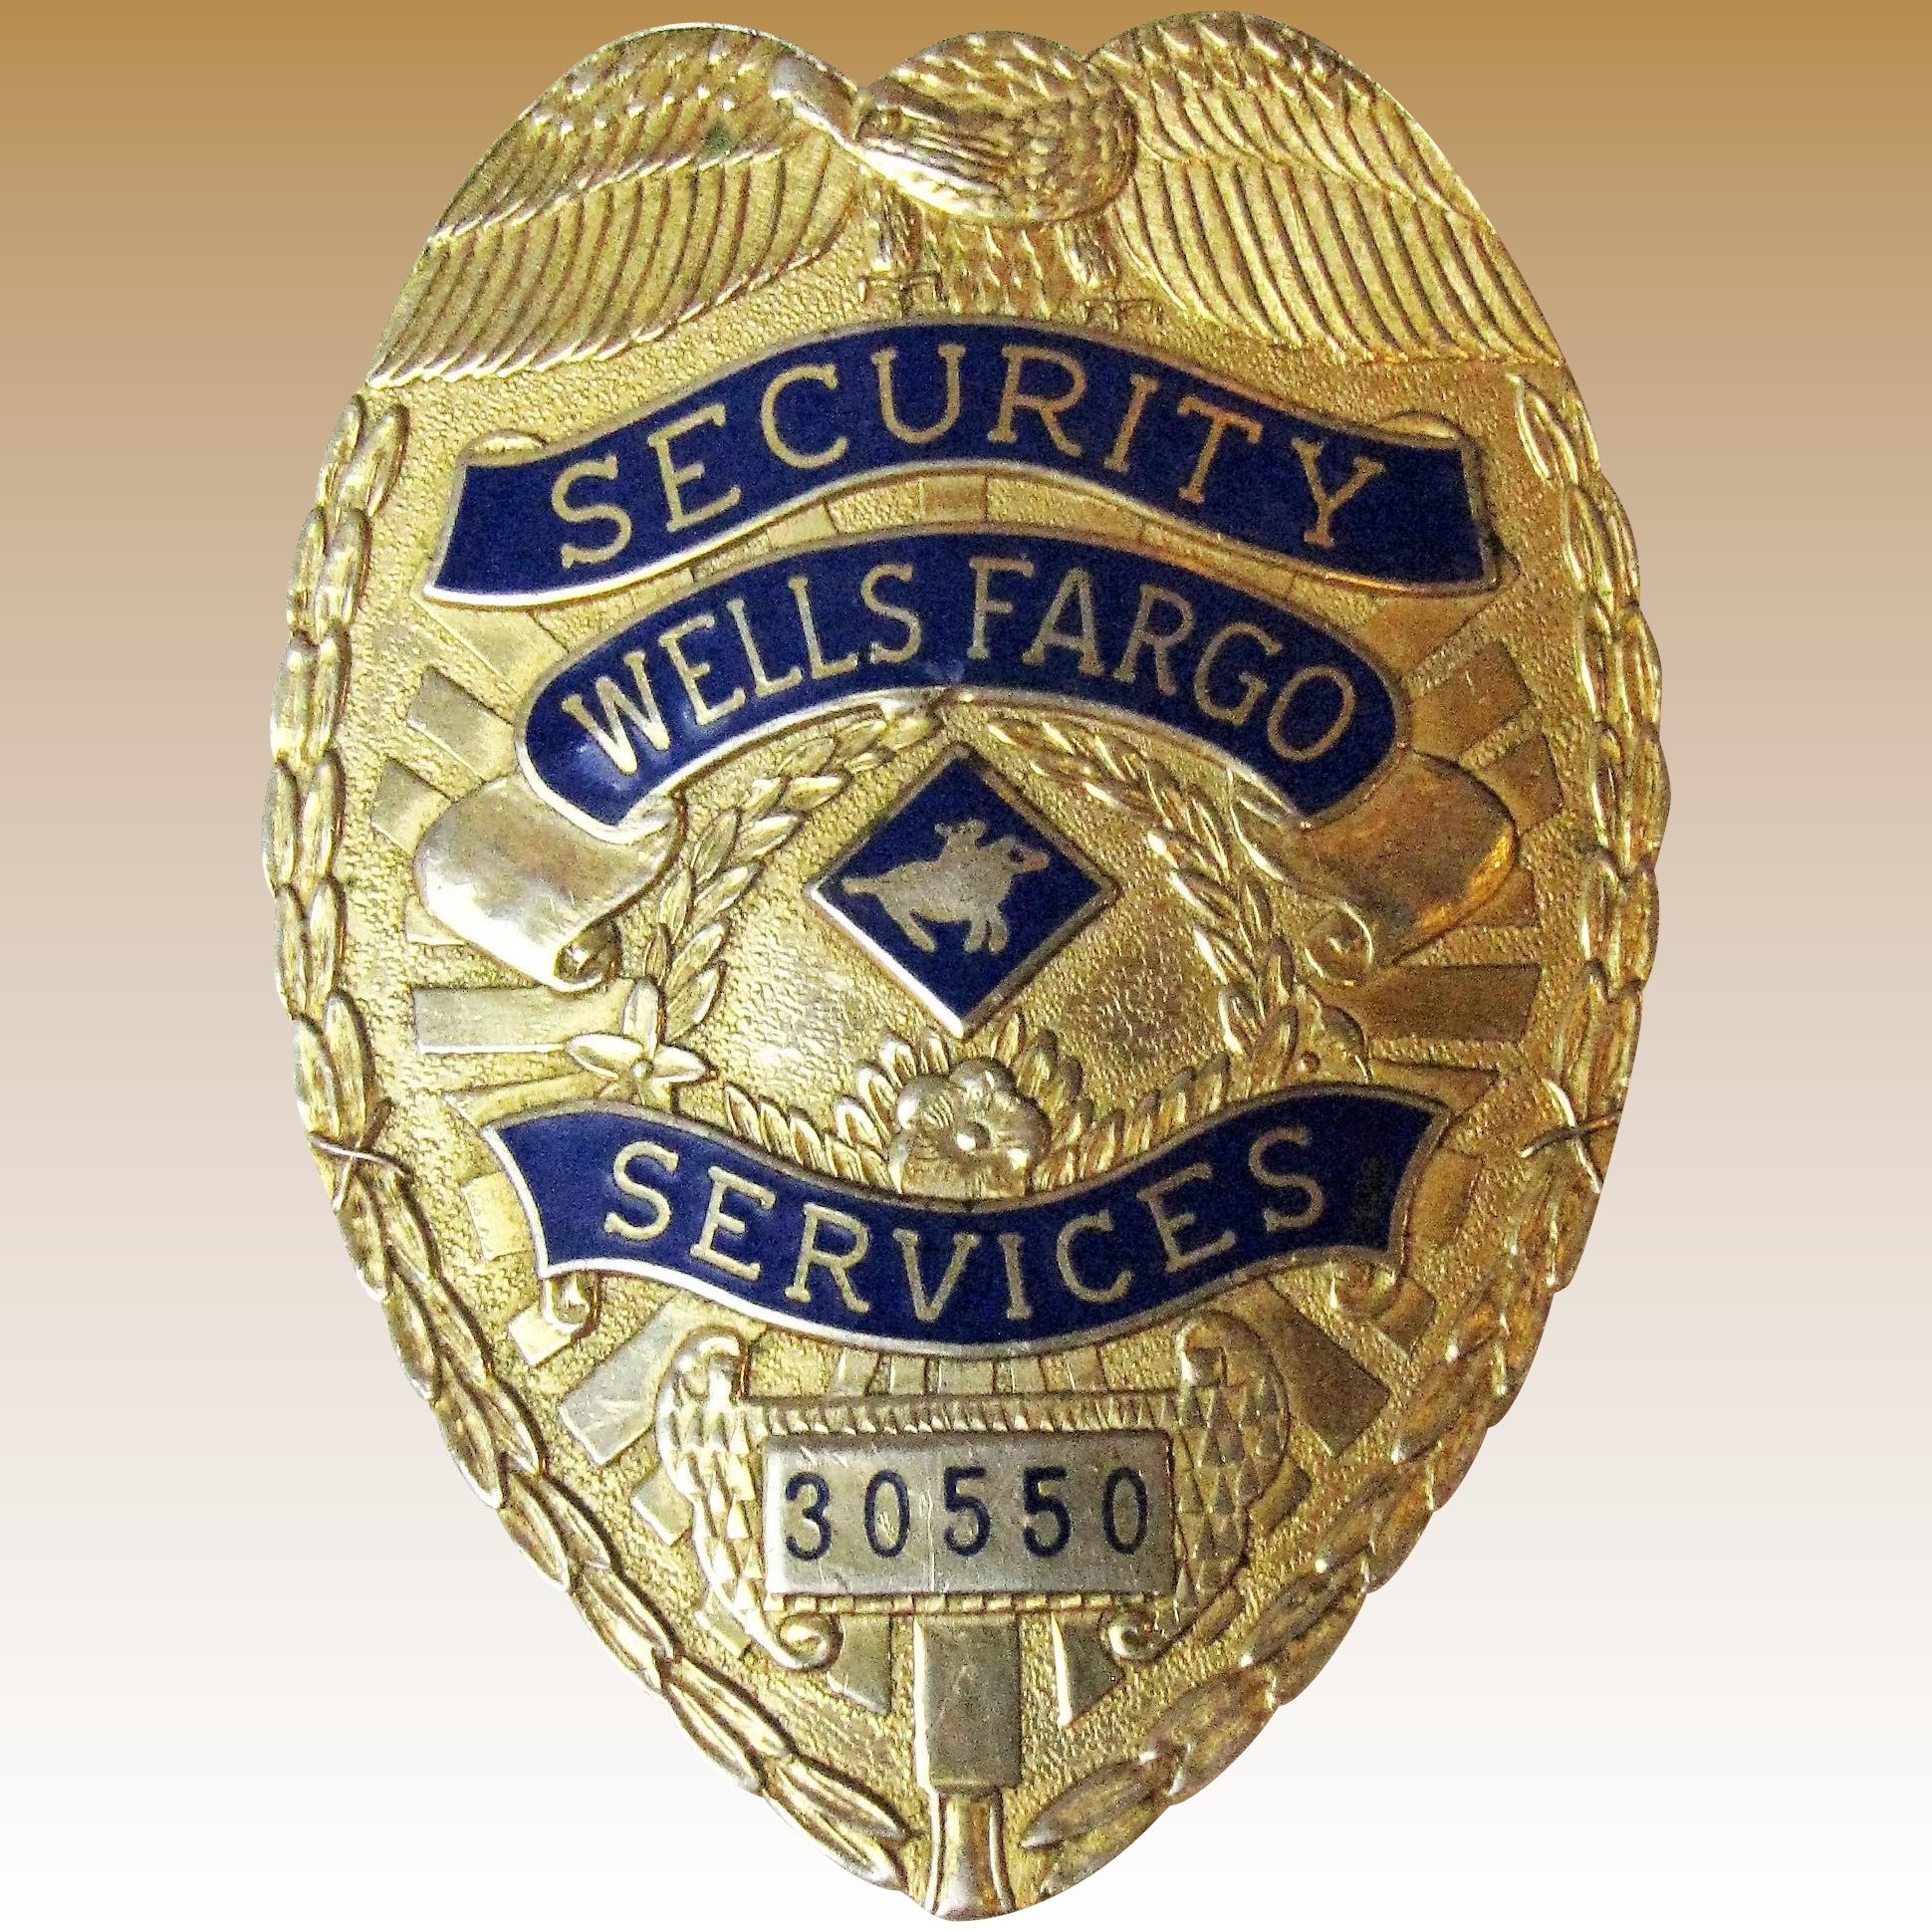 Snazzy Click To Expand Vintage Wells Fargo Security Services Badge Fay Wray Retailservices Wellsfargowfjaml Wells Fargo Jewelry Advantage Payment Address wedding jewelry Wells Fargo Jewelry Advantage